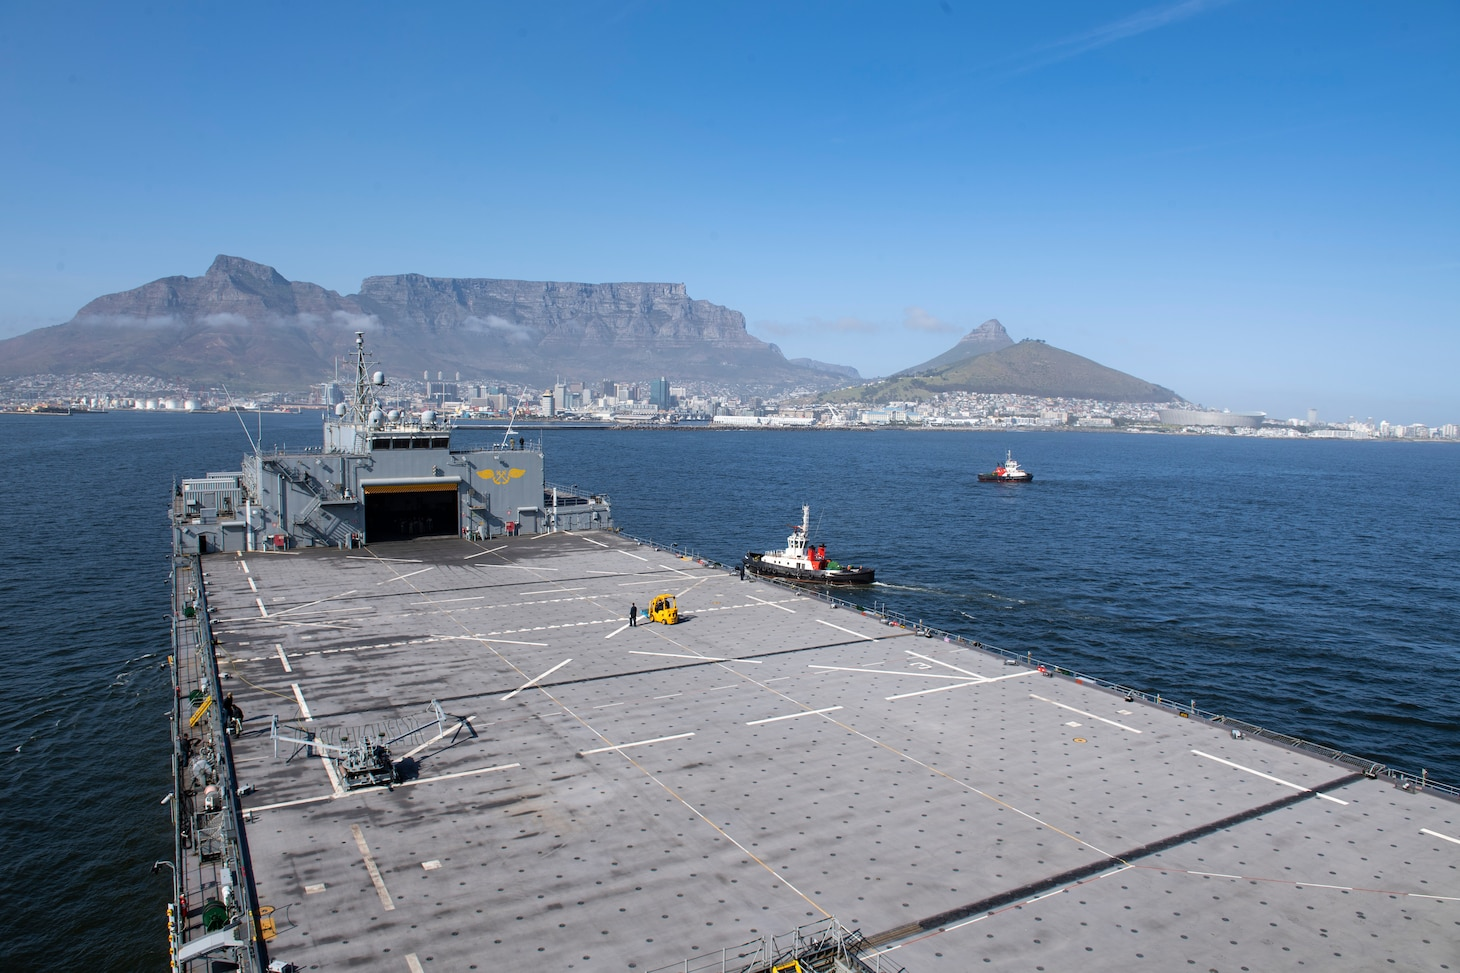 """The Expeditionary Sea Base USS Hershel """"Woody"""" Williams (ESB 4) pulls into port in Cape Town, South Africa, Sept. 25, 2021. Hershel """"Woody"""" Williams is on a scheduled deployment in the U.S. Sixth Fleet area of operations in in support of U.S. national interests and security and stability in Europe and Africa."""